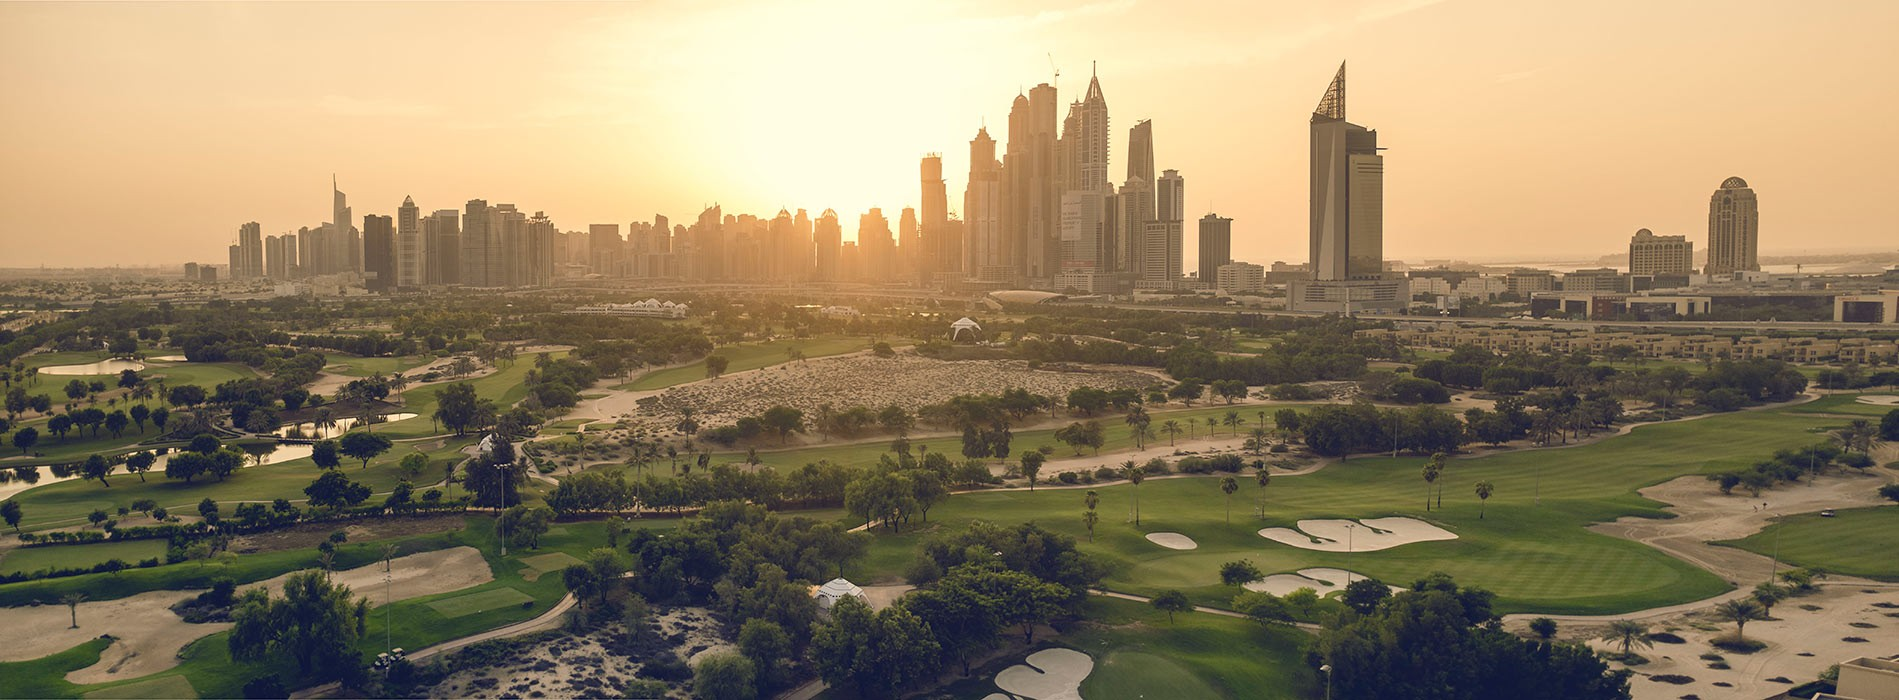 Dubai Golf – 2015